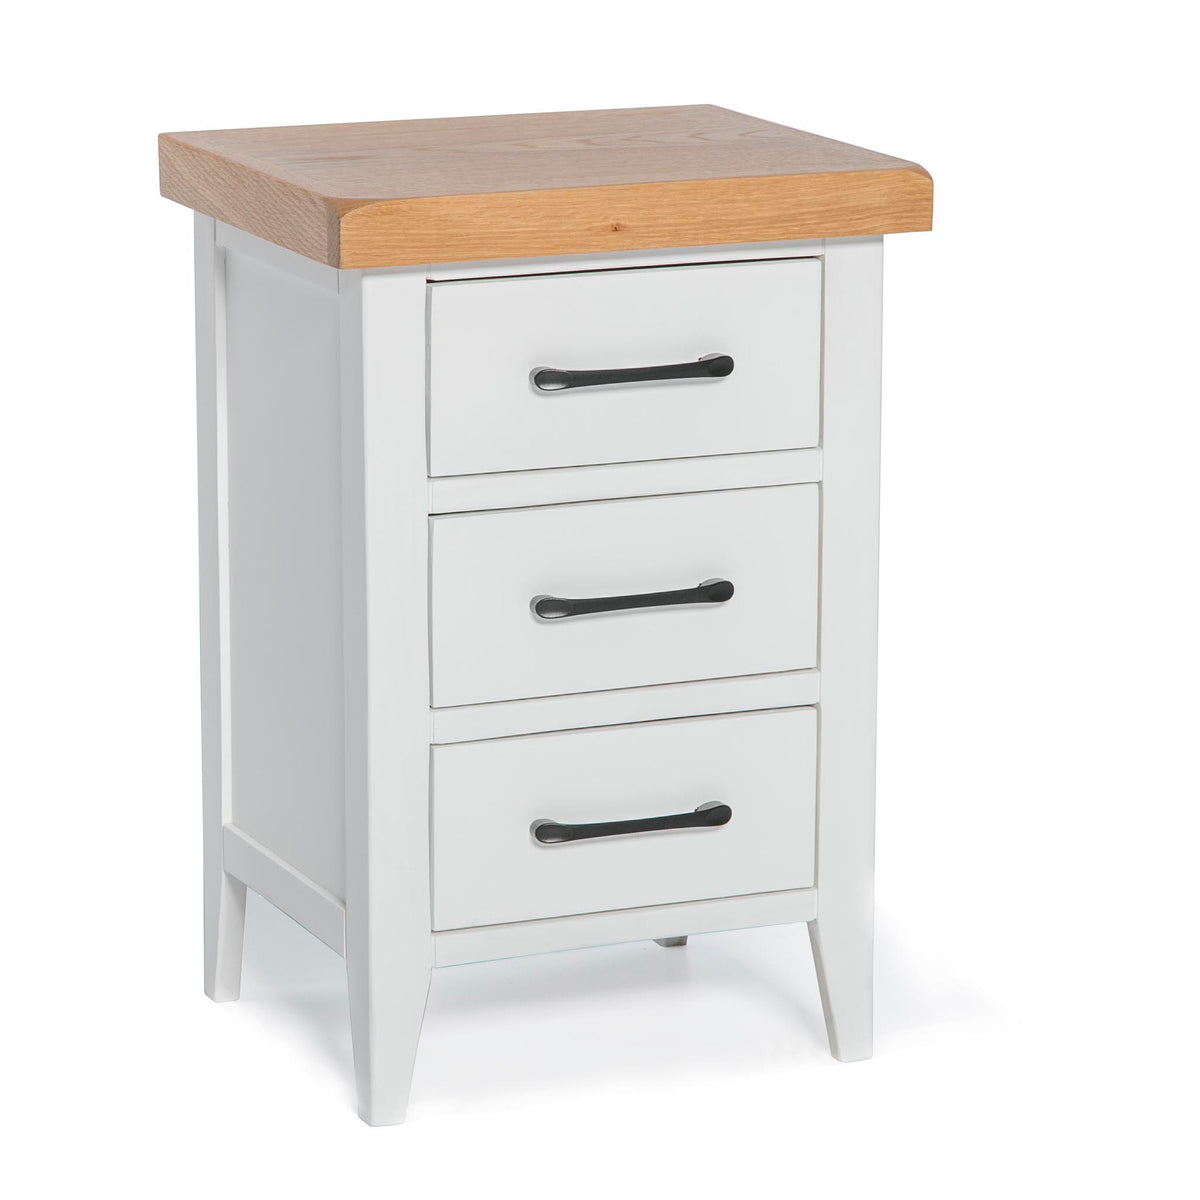 Chatsworth White Bedside Table by Roseland Furniture